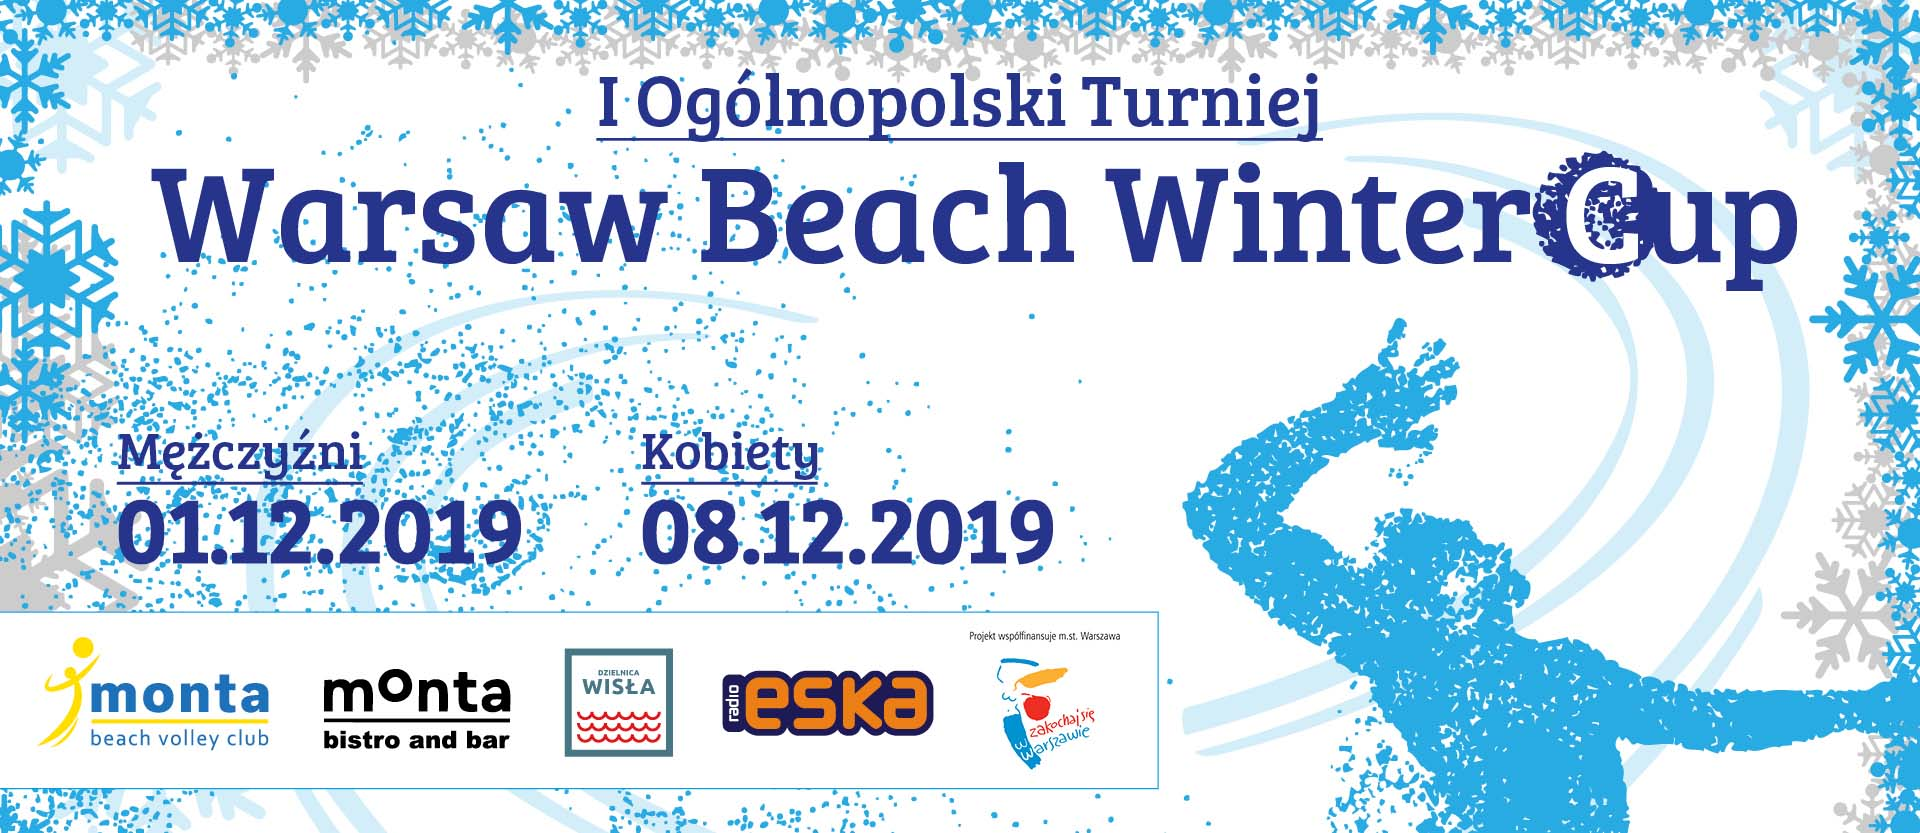 Warsaw Beach Winter Cup 2019